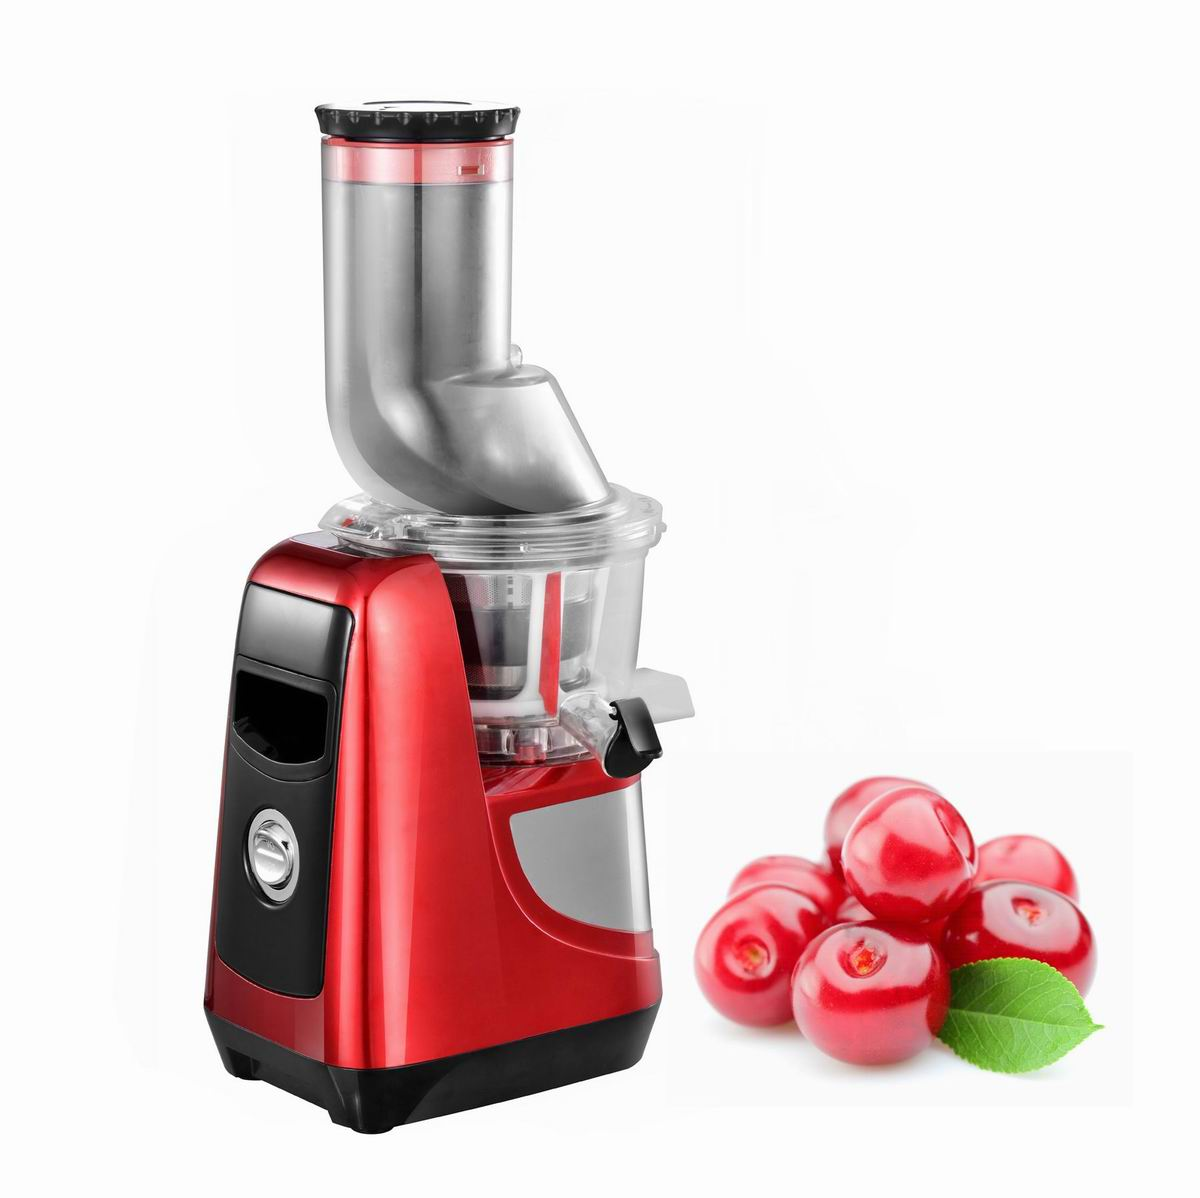 Slow Juicer China : 2015 New big mouth slow masticating juicer purchasing ...